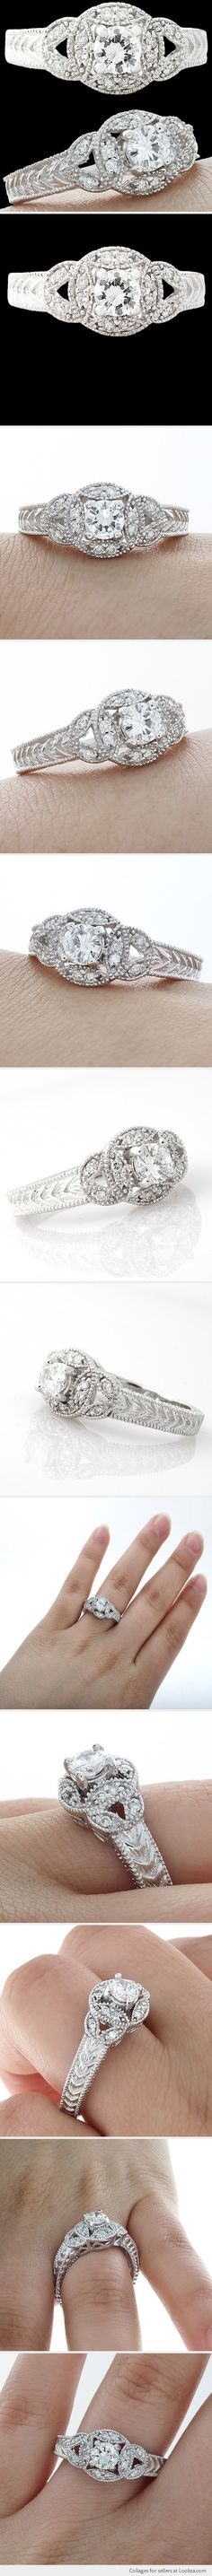 vintage engagement rings, white gold